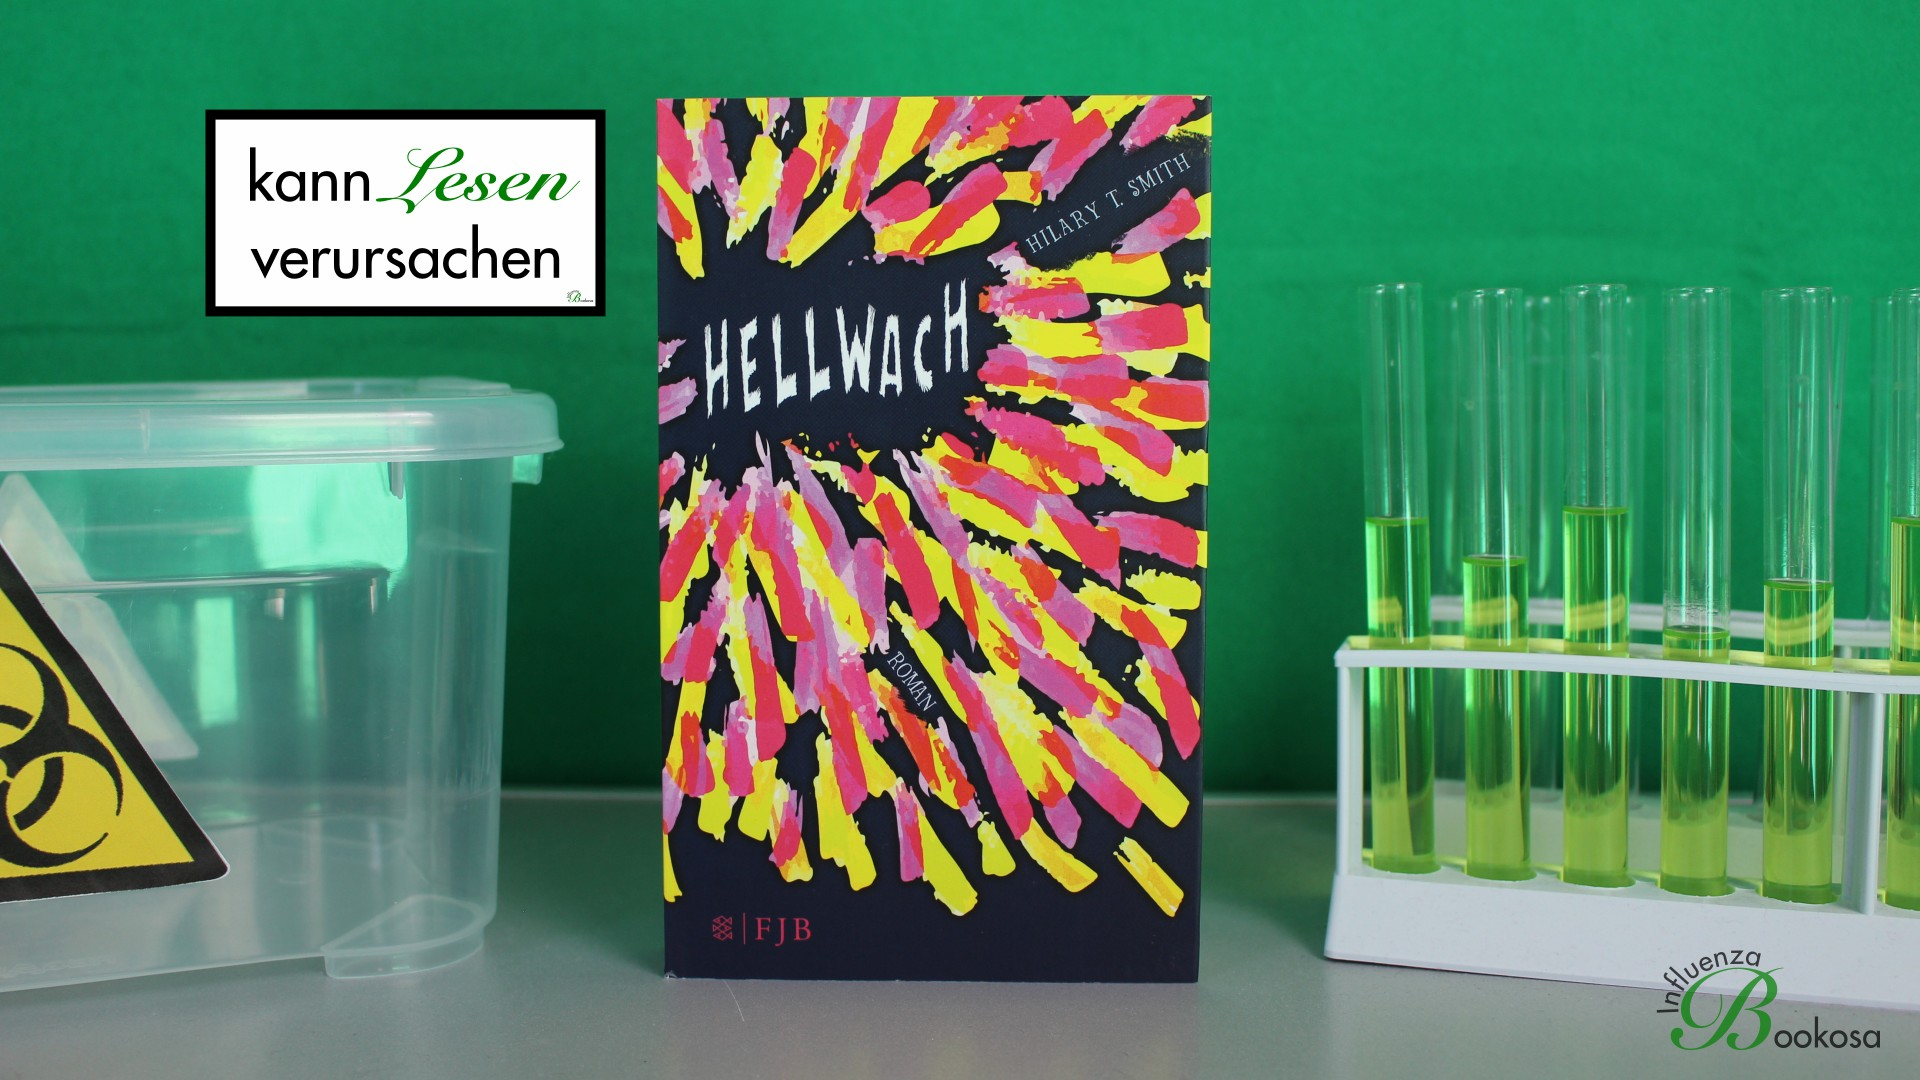 Hilary Smith - Hellwach